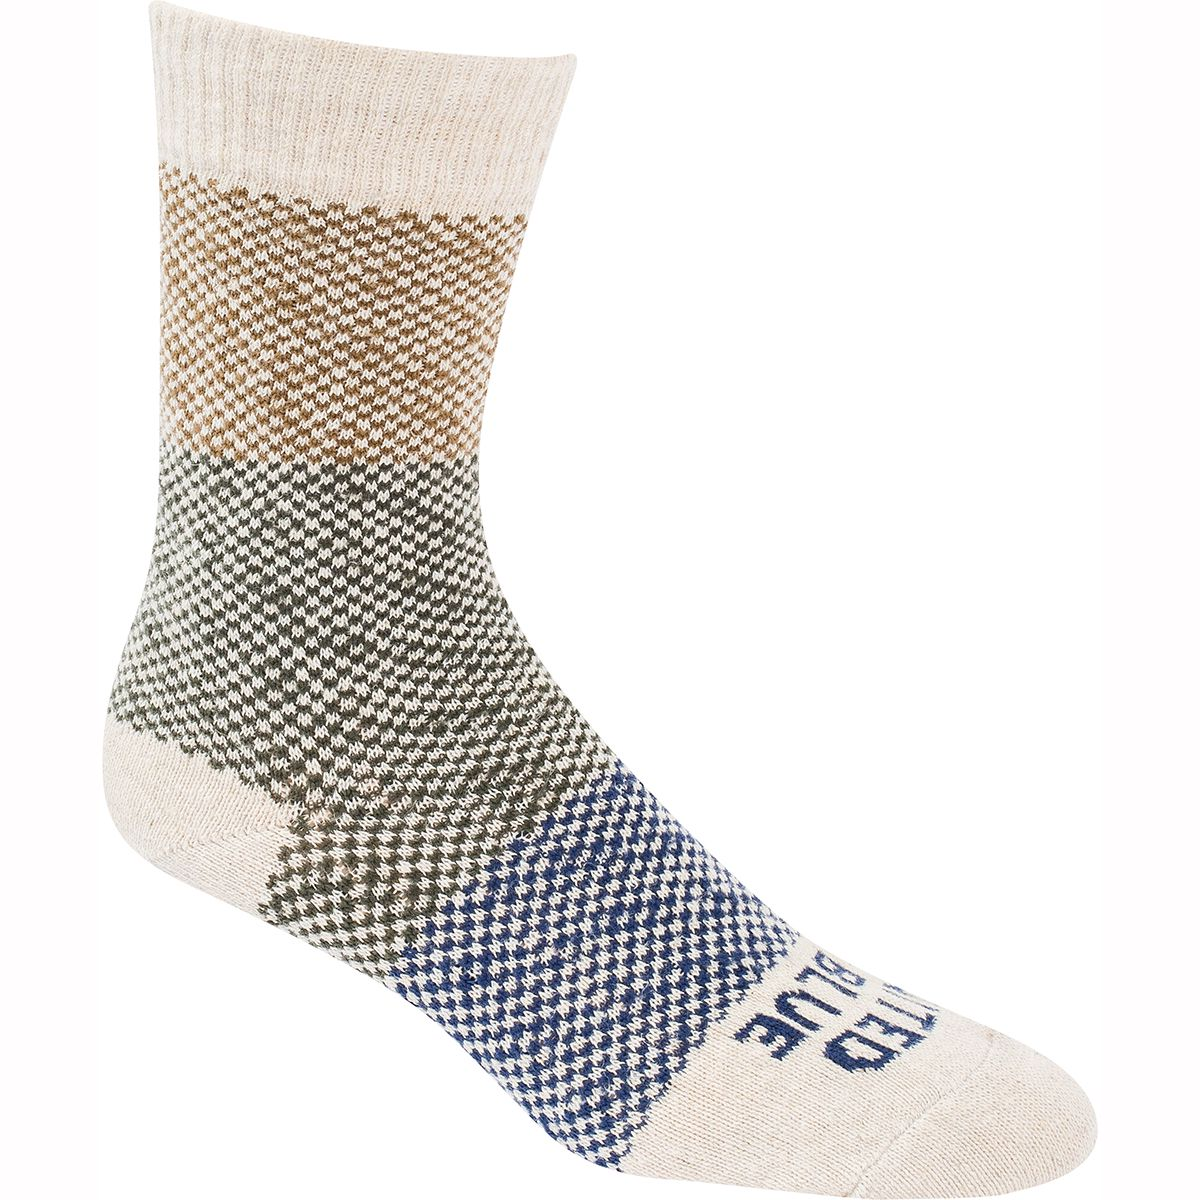 United by Blue Tacony Hemp Socken Oliv 43, 44, 45, 46